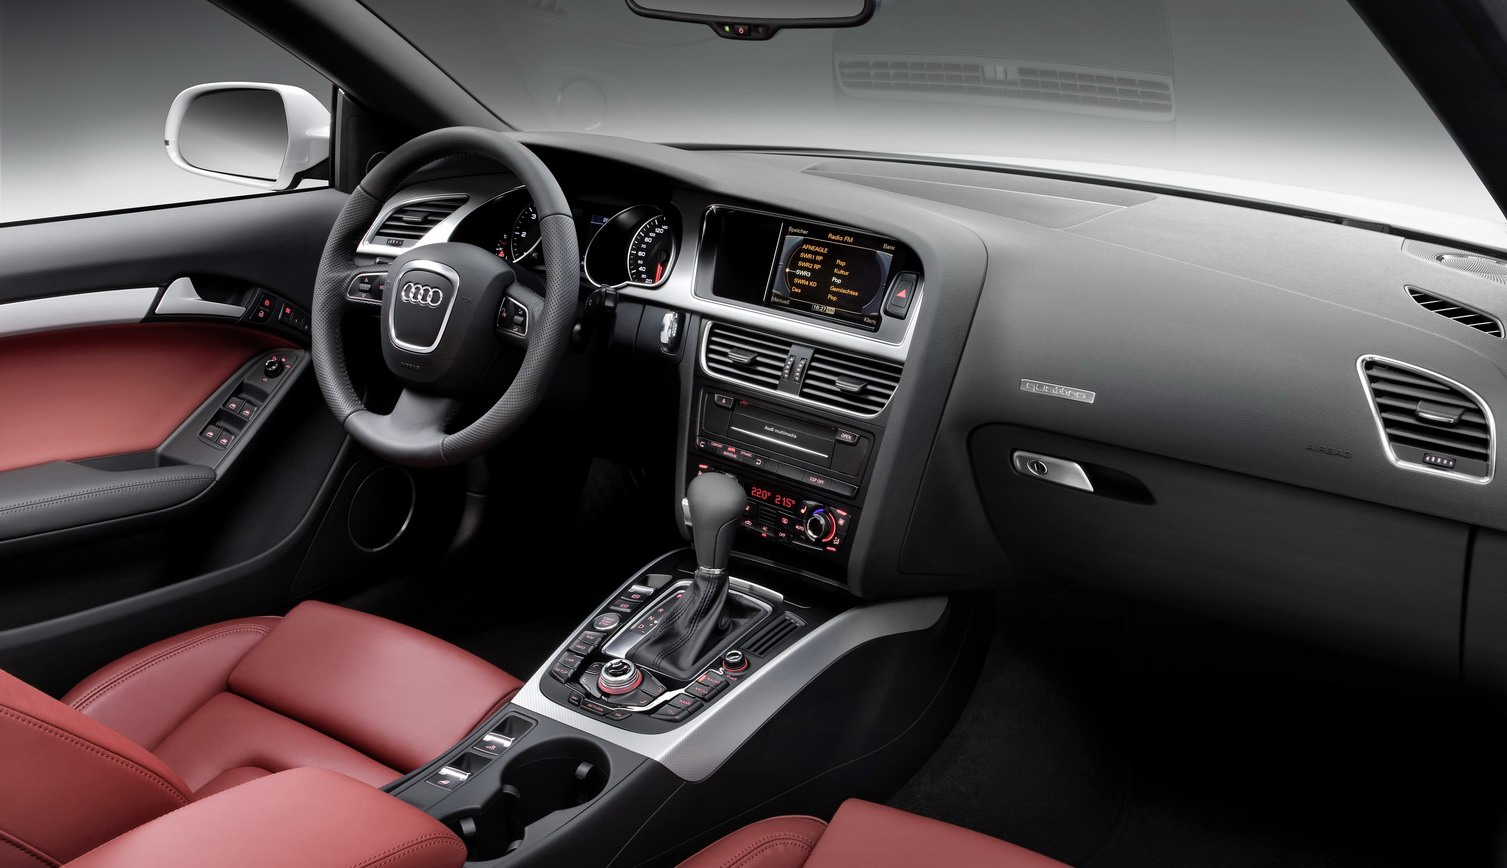 New 2010 Audi A5/S5 Cabriolet Revealed (details And Photo) » Audi A5  Cabriolet 2010 Interior Img_8